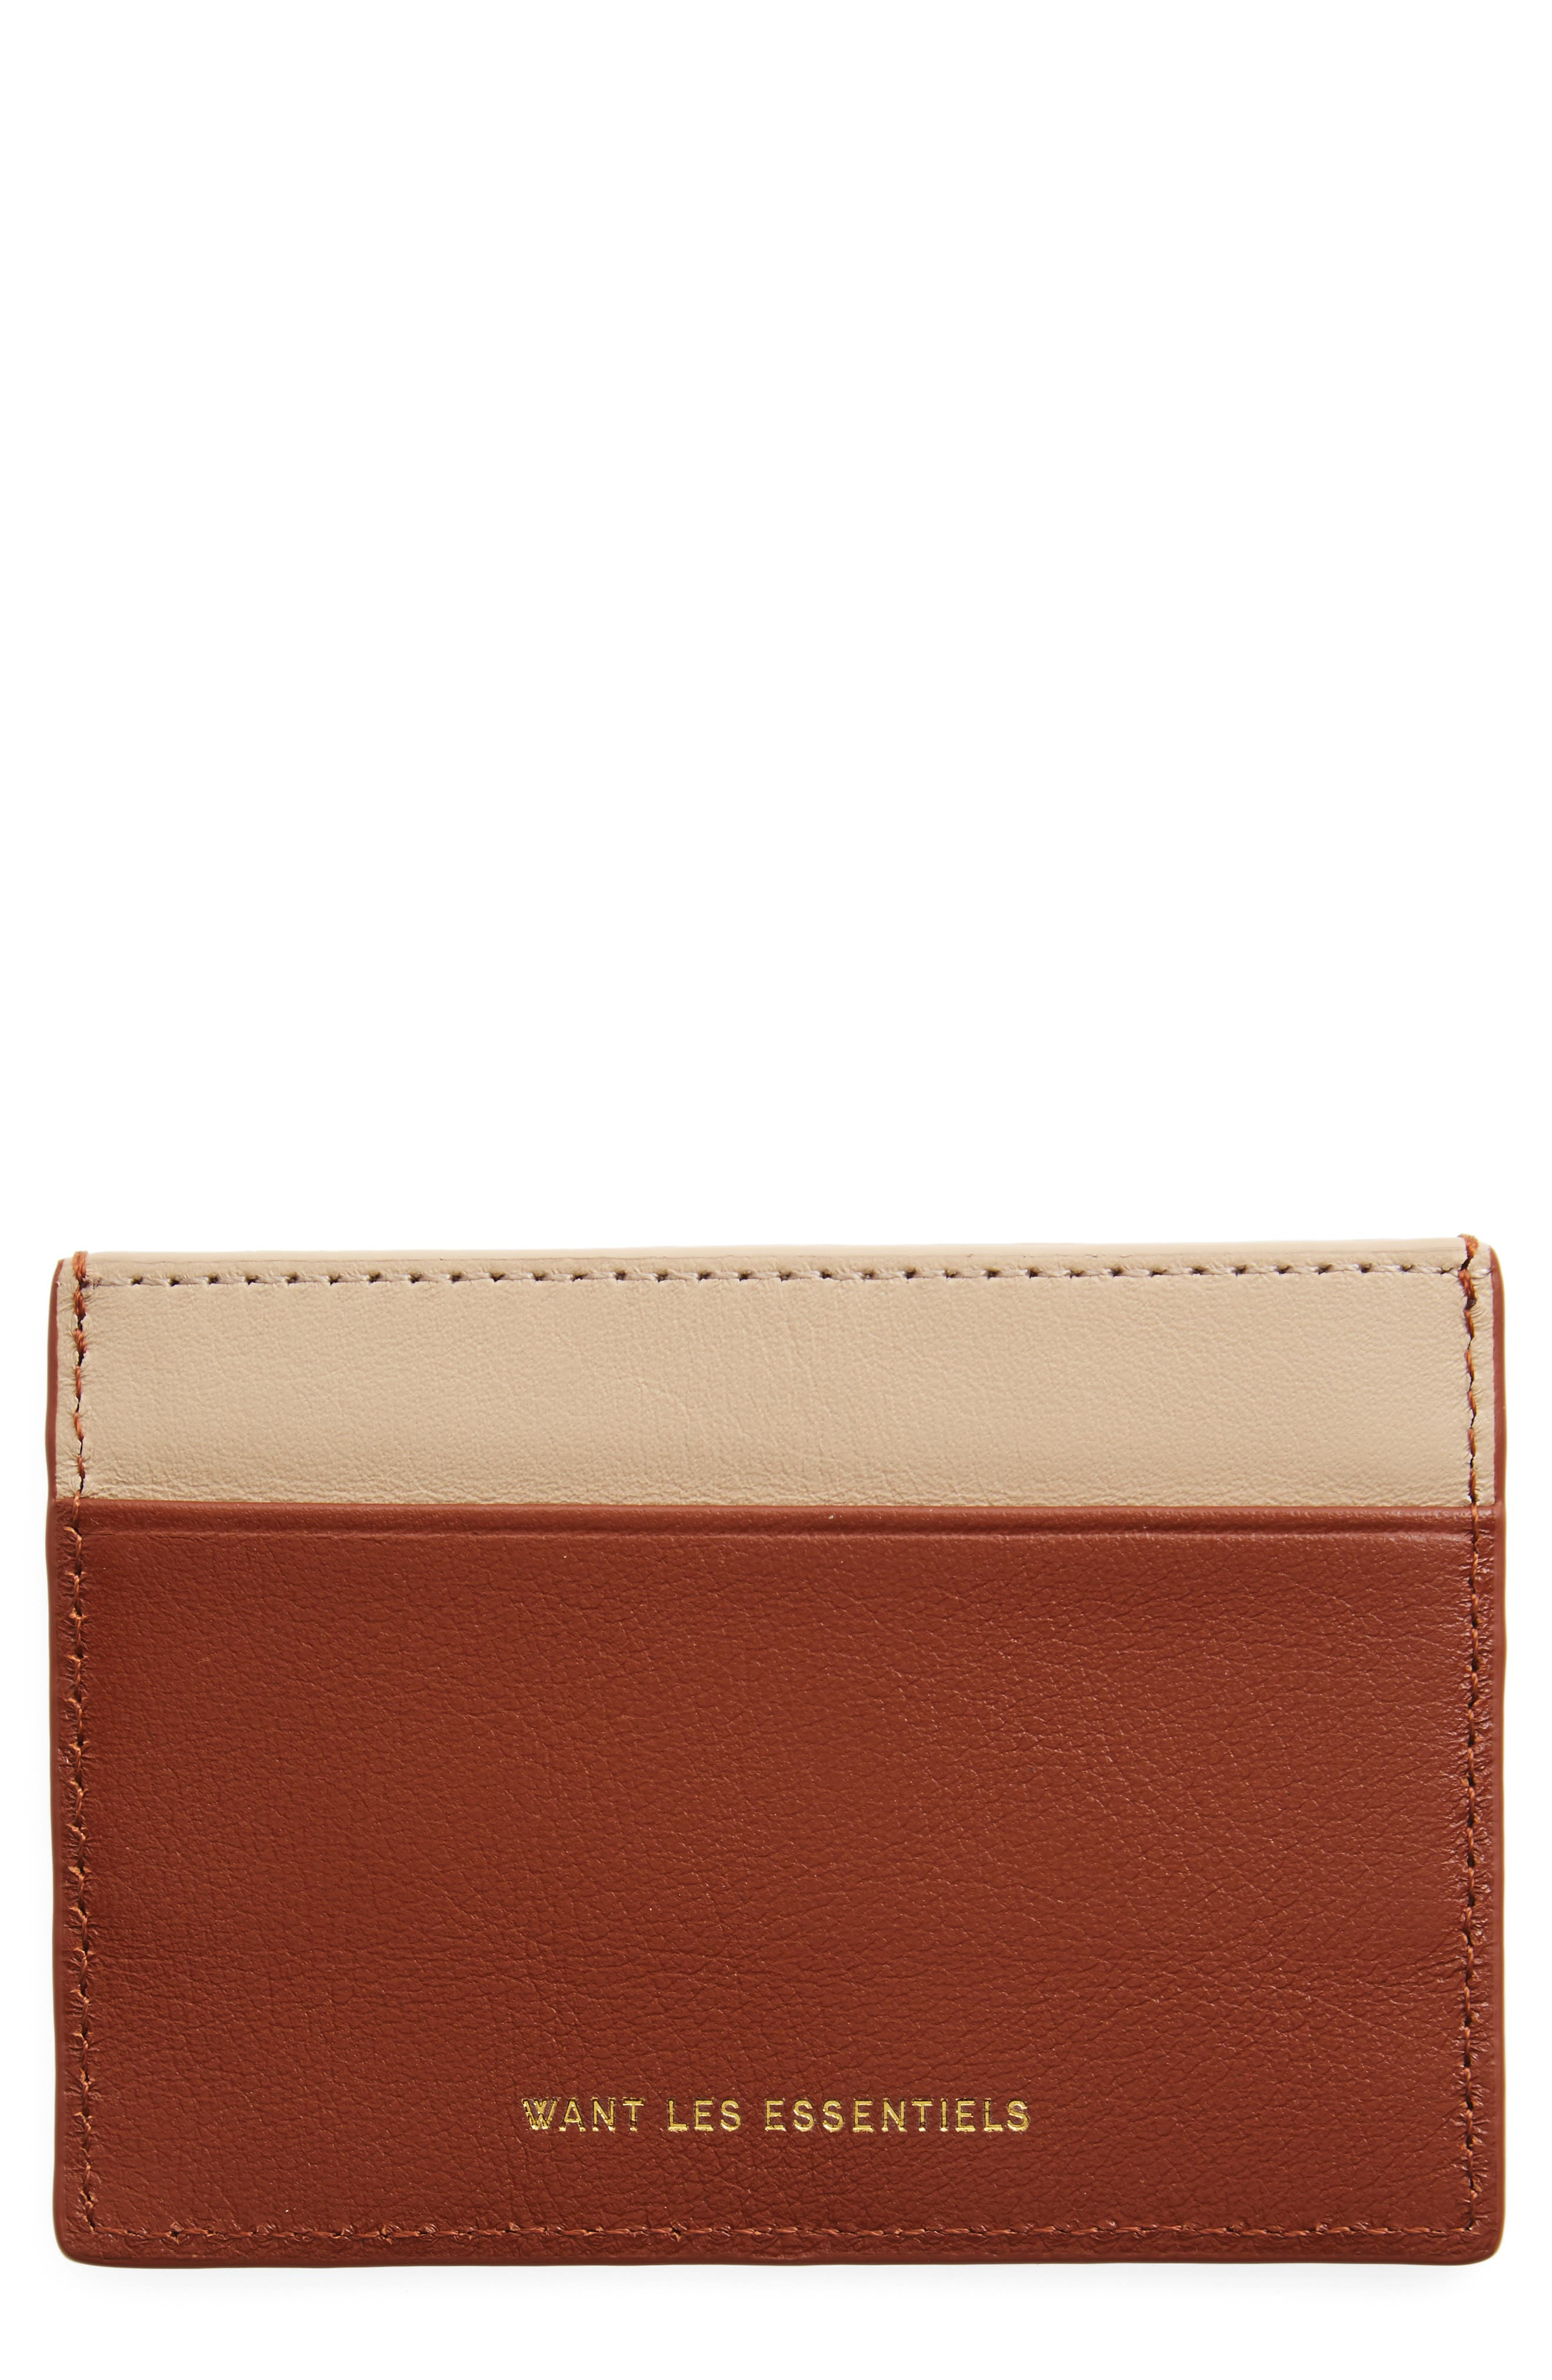 Main Image - WANT LES ESSENTIELS Branson Leather Card